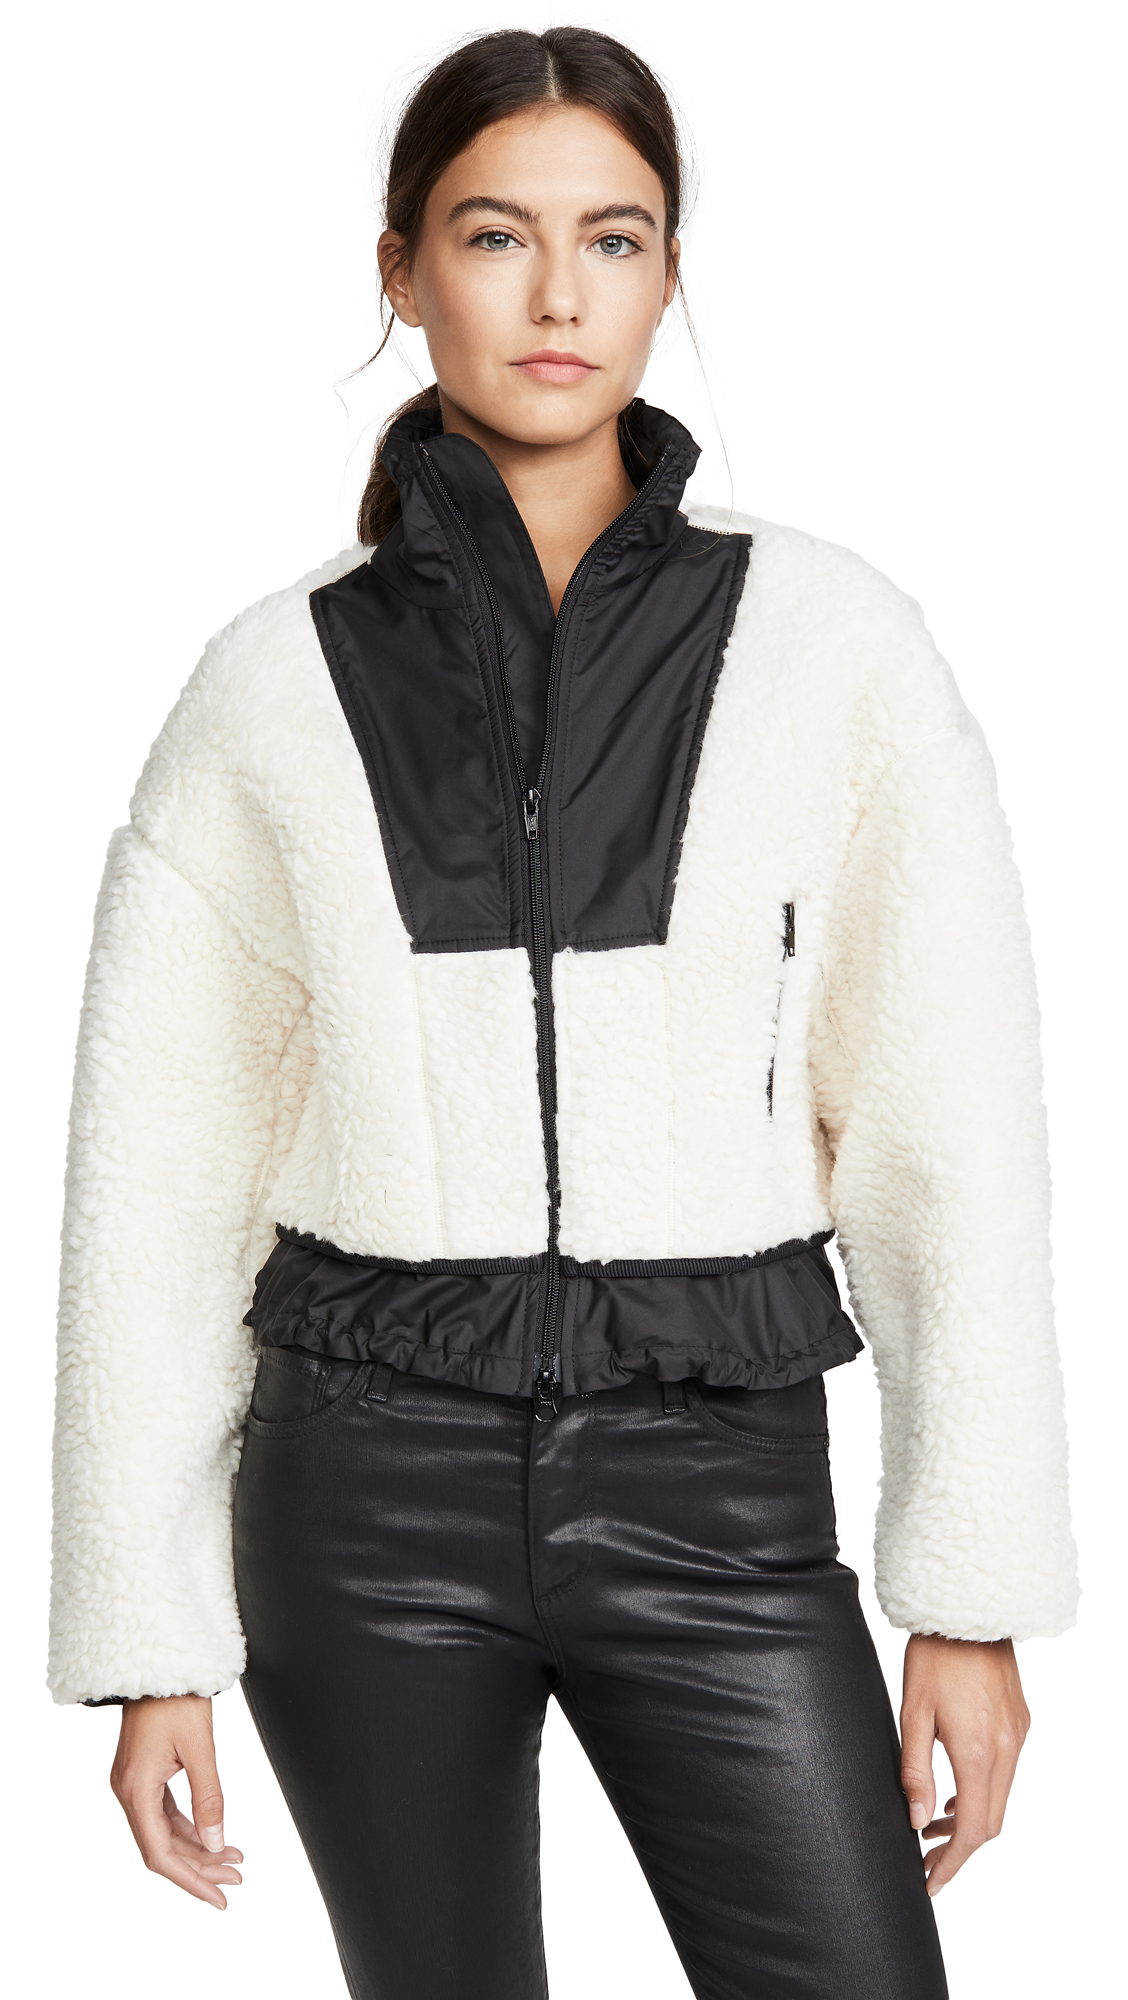 Buy 3.1 Phillip Lim Cropped Bomber Jacket online beautiful 3.1 Phillip Lim Jackets, Coats, Down Jackets